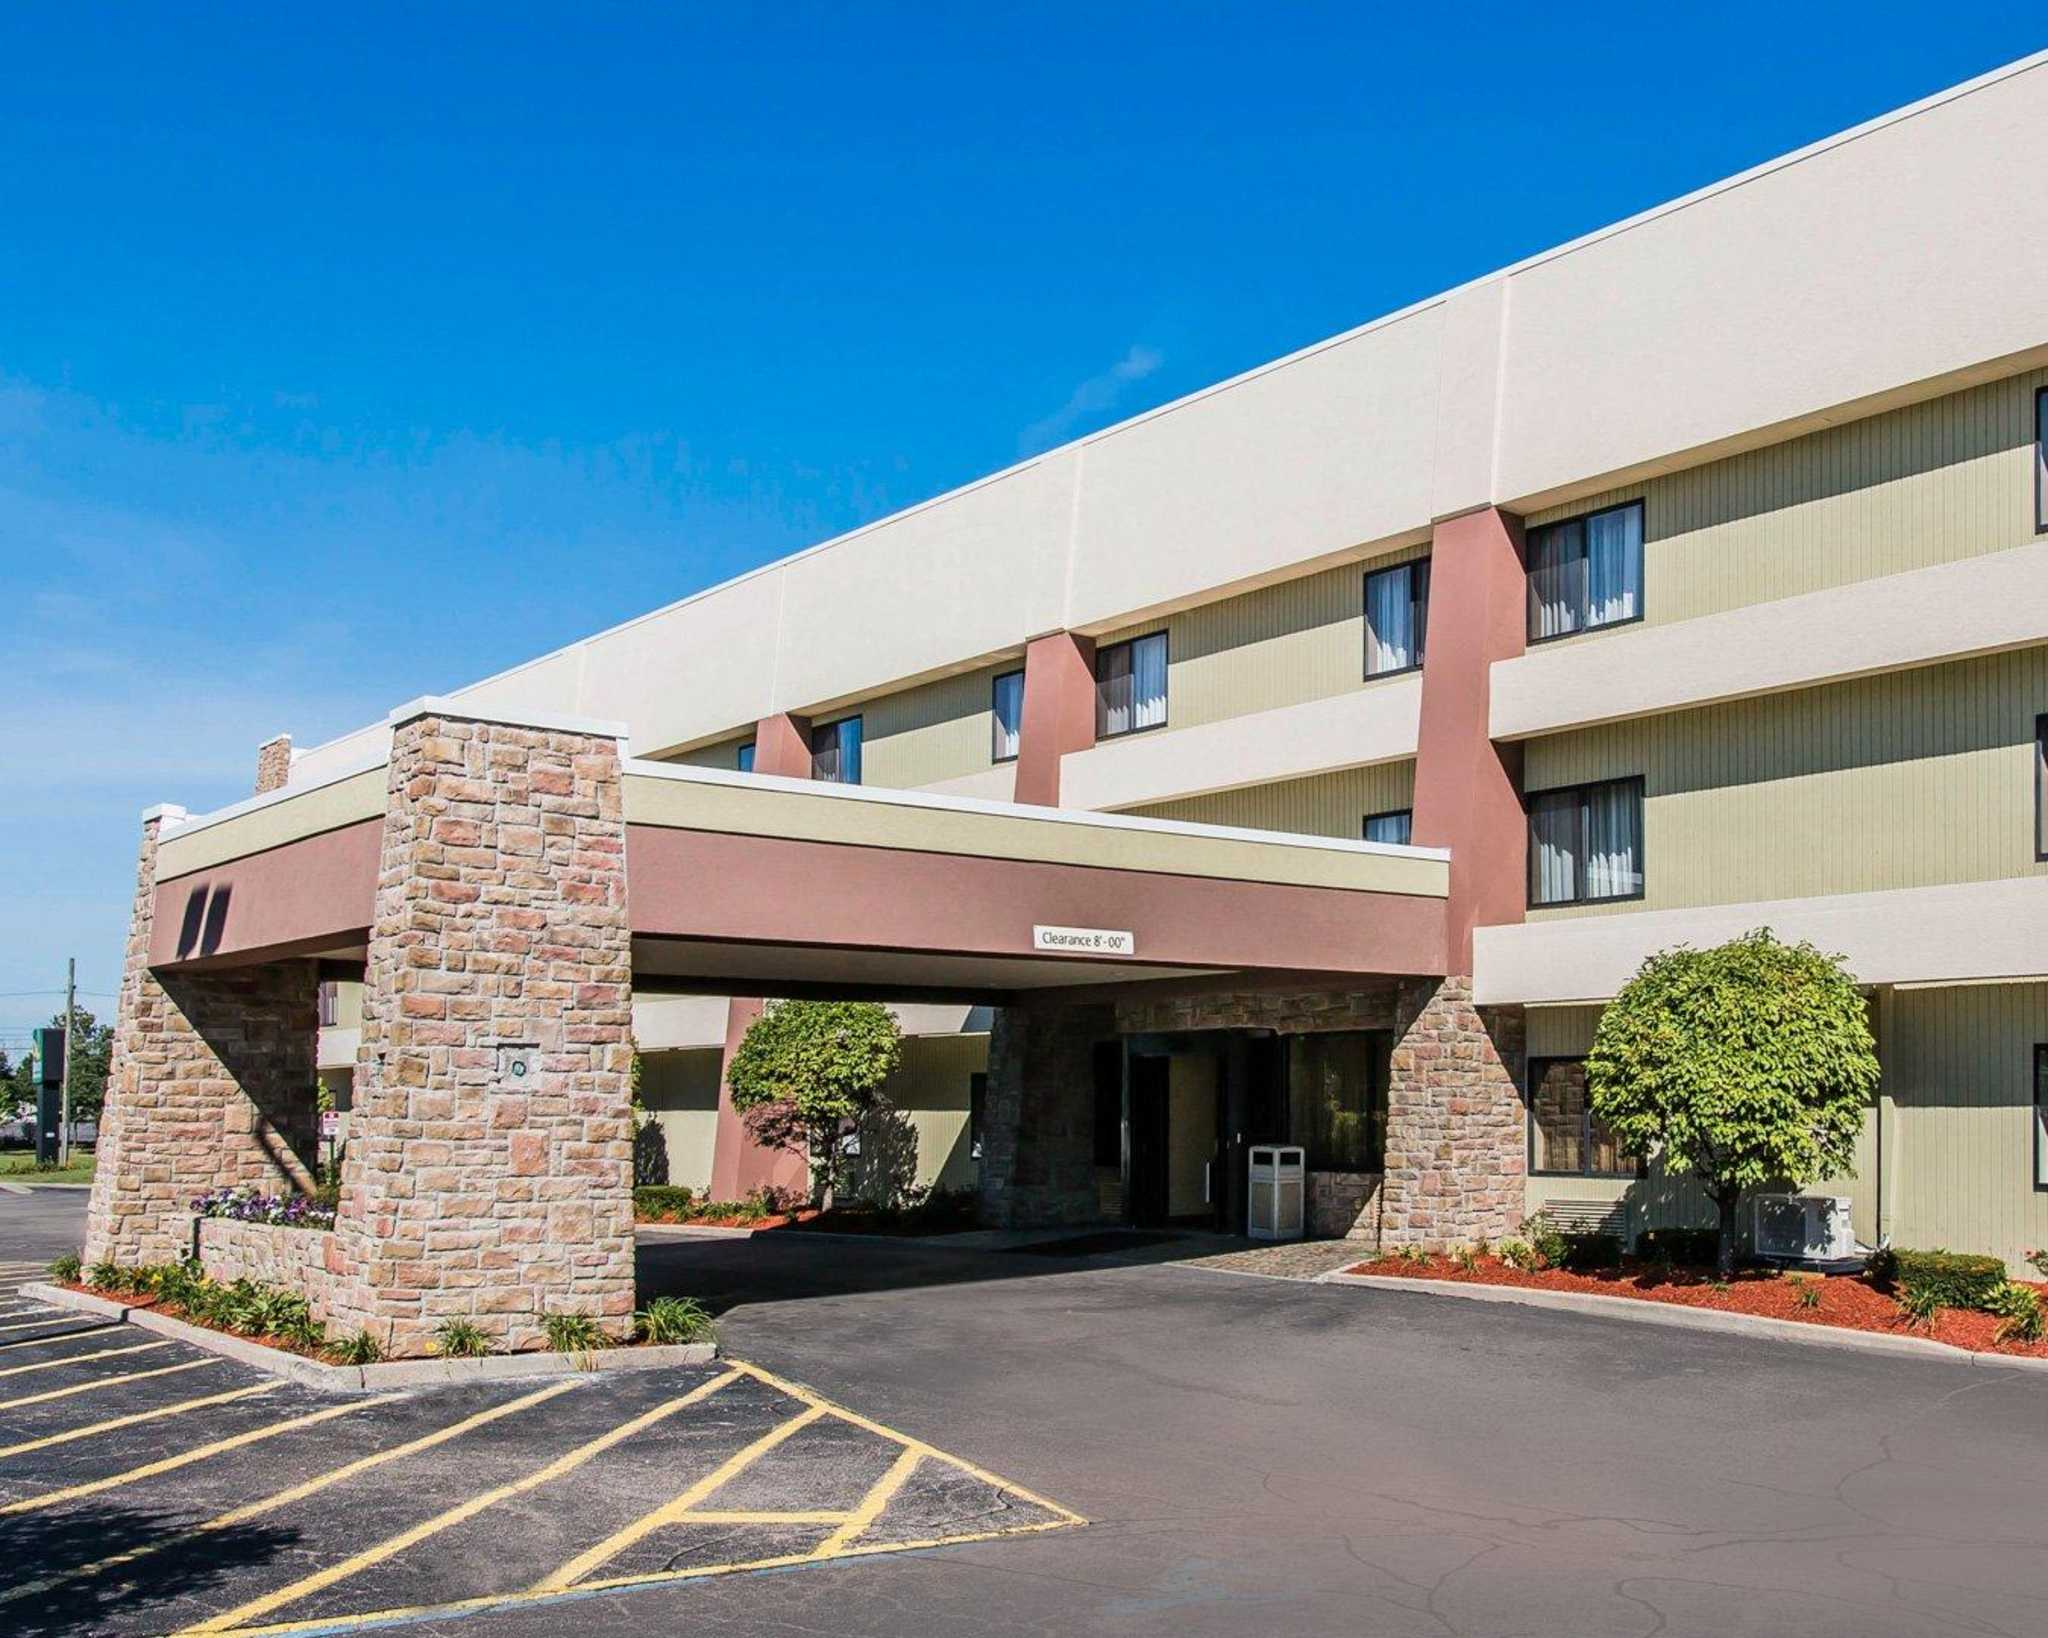 You can find the Quality Inn & Suites hotel located 1 mile from the Detroit Metropolitan Wayne County Airport, another convenience of the hotel is we are